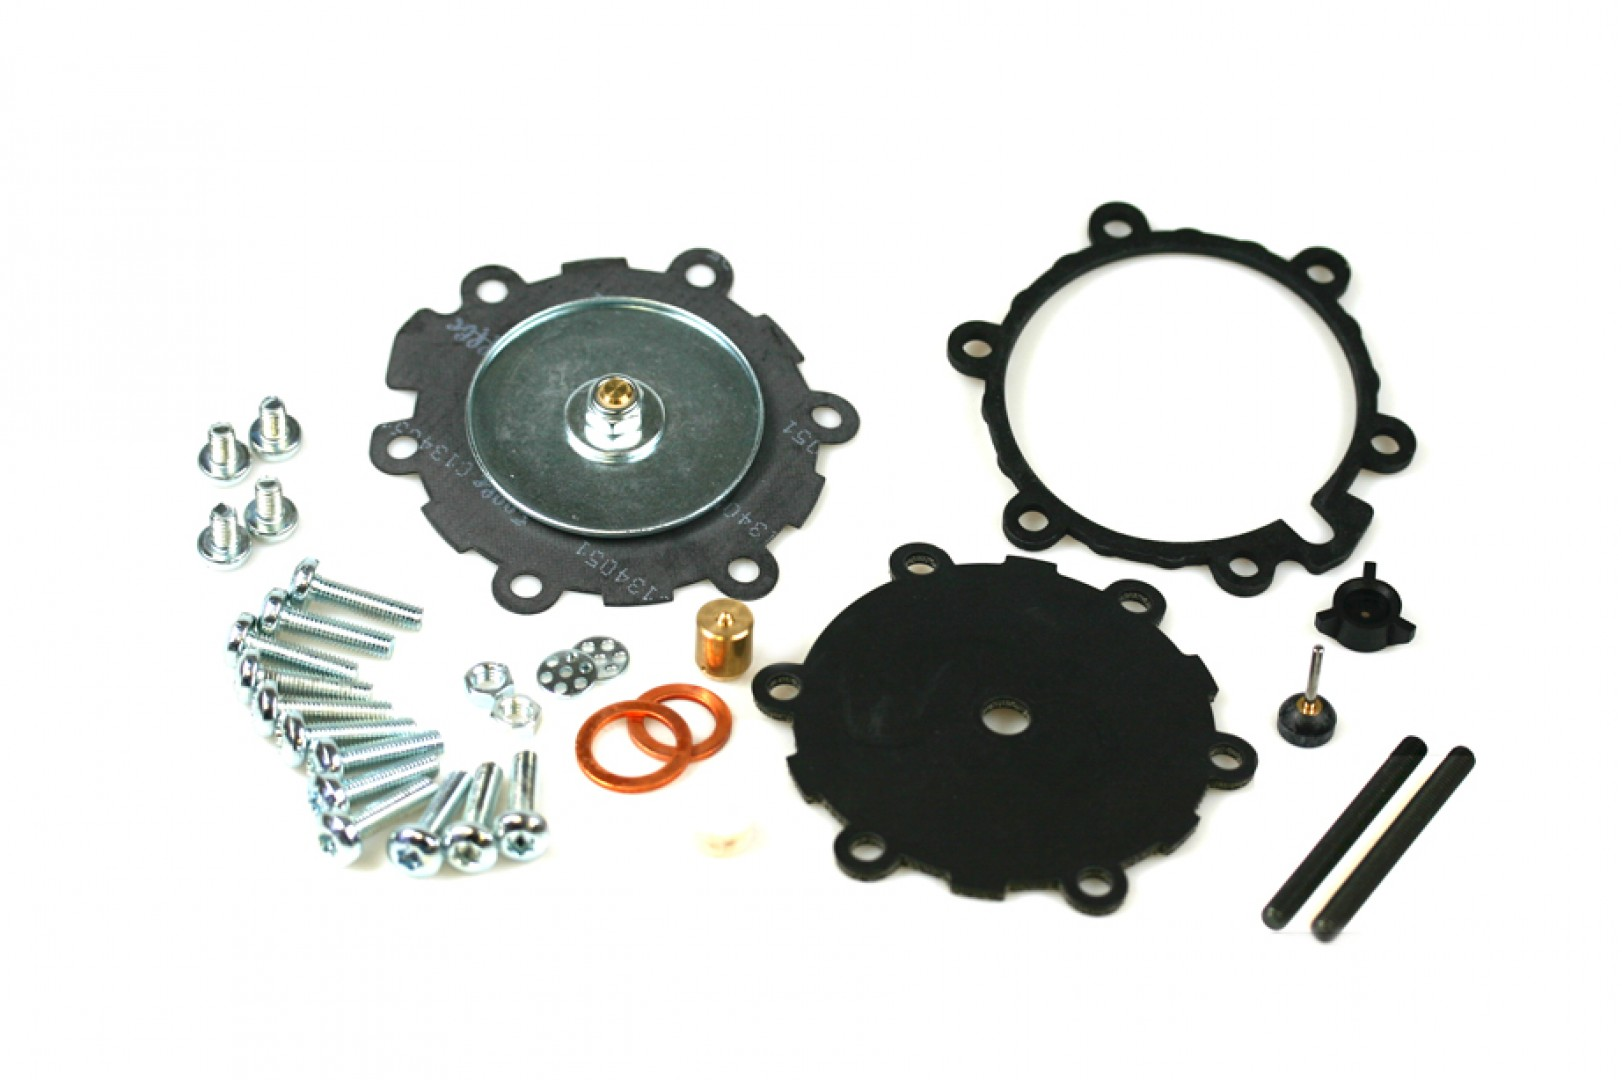 Tomasetto Repair kit for AT12 CNG reducer - Autogas-Kits and